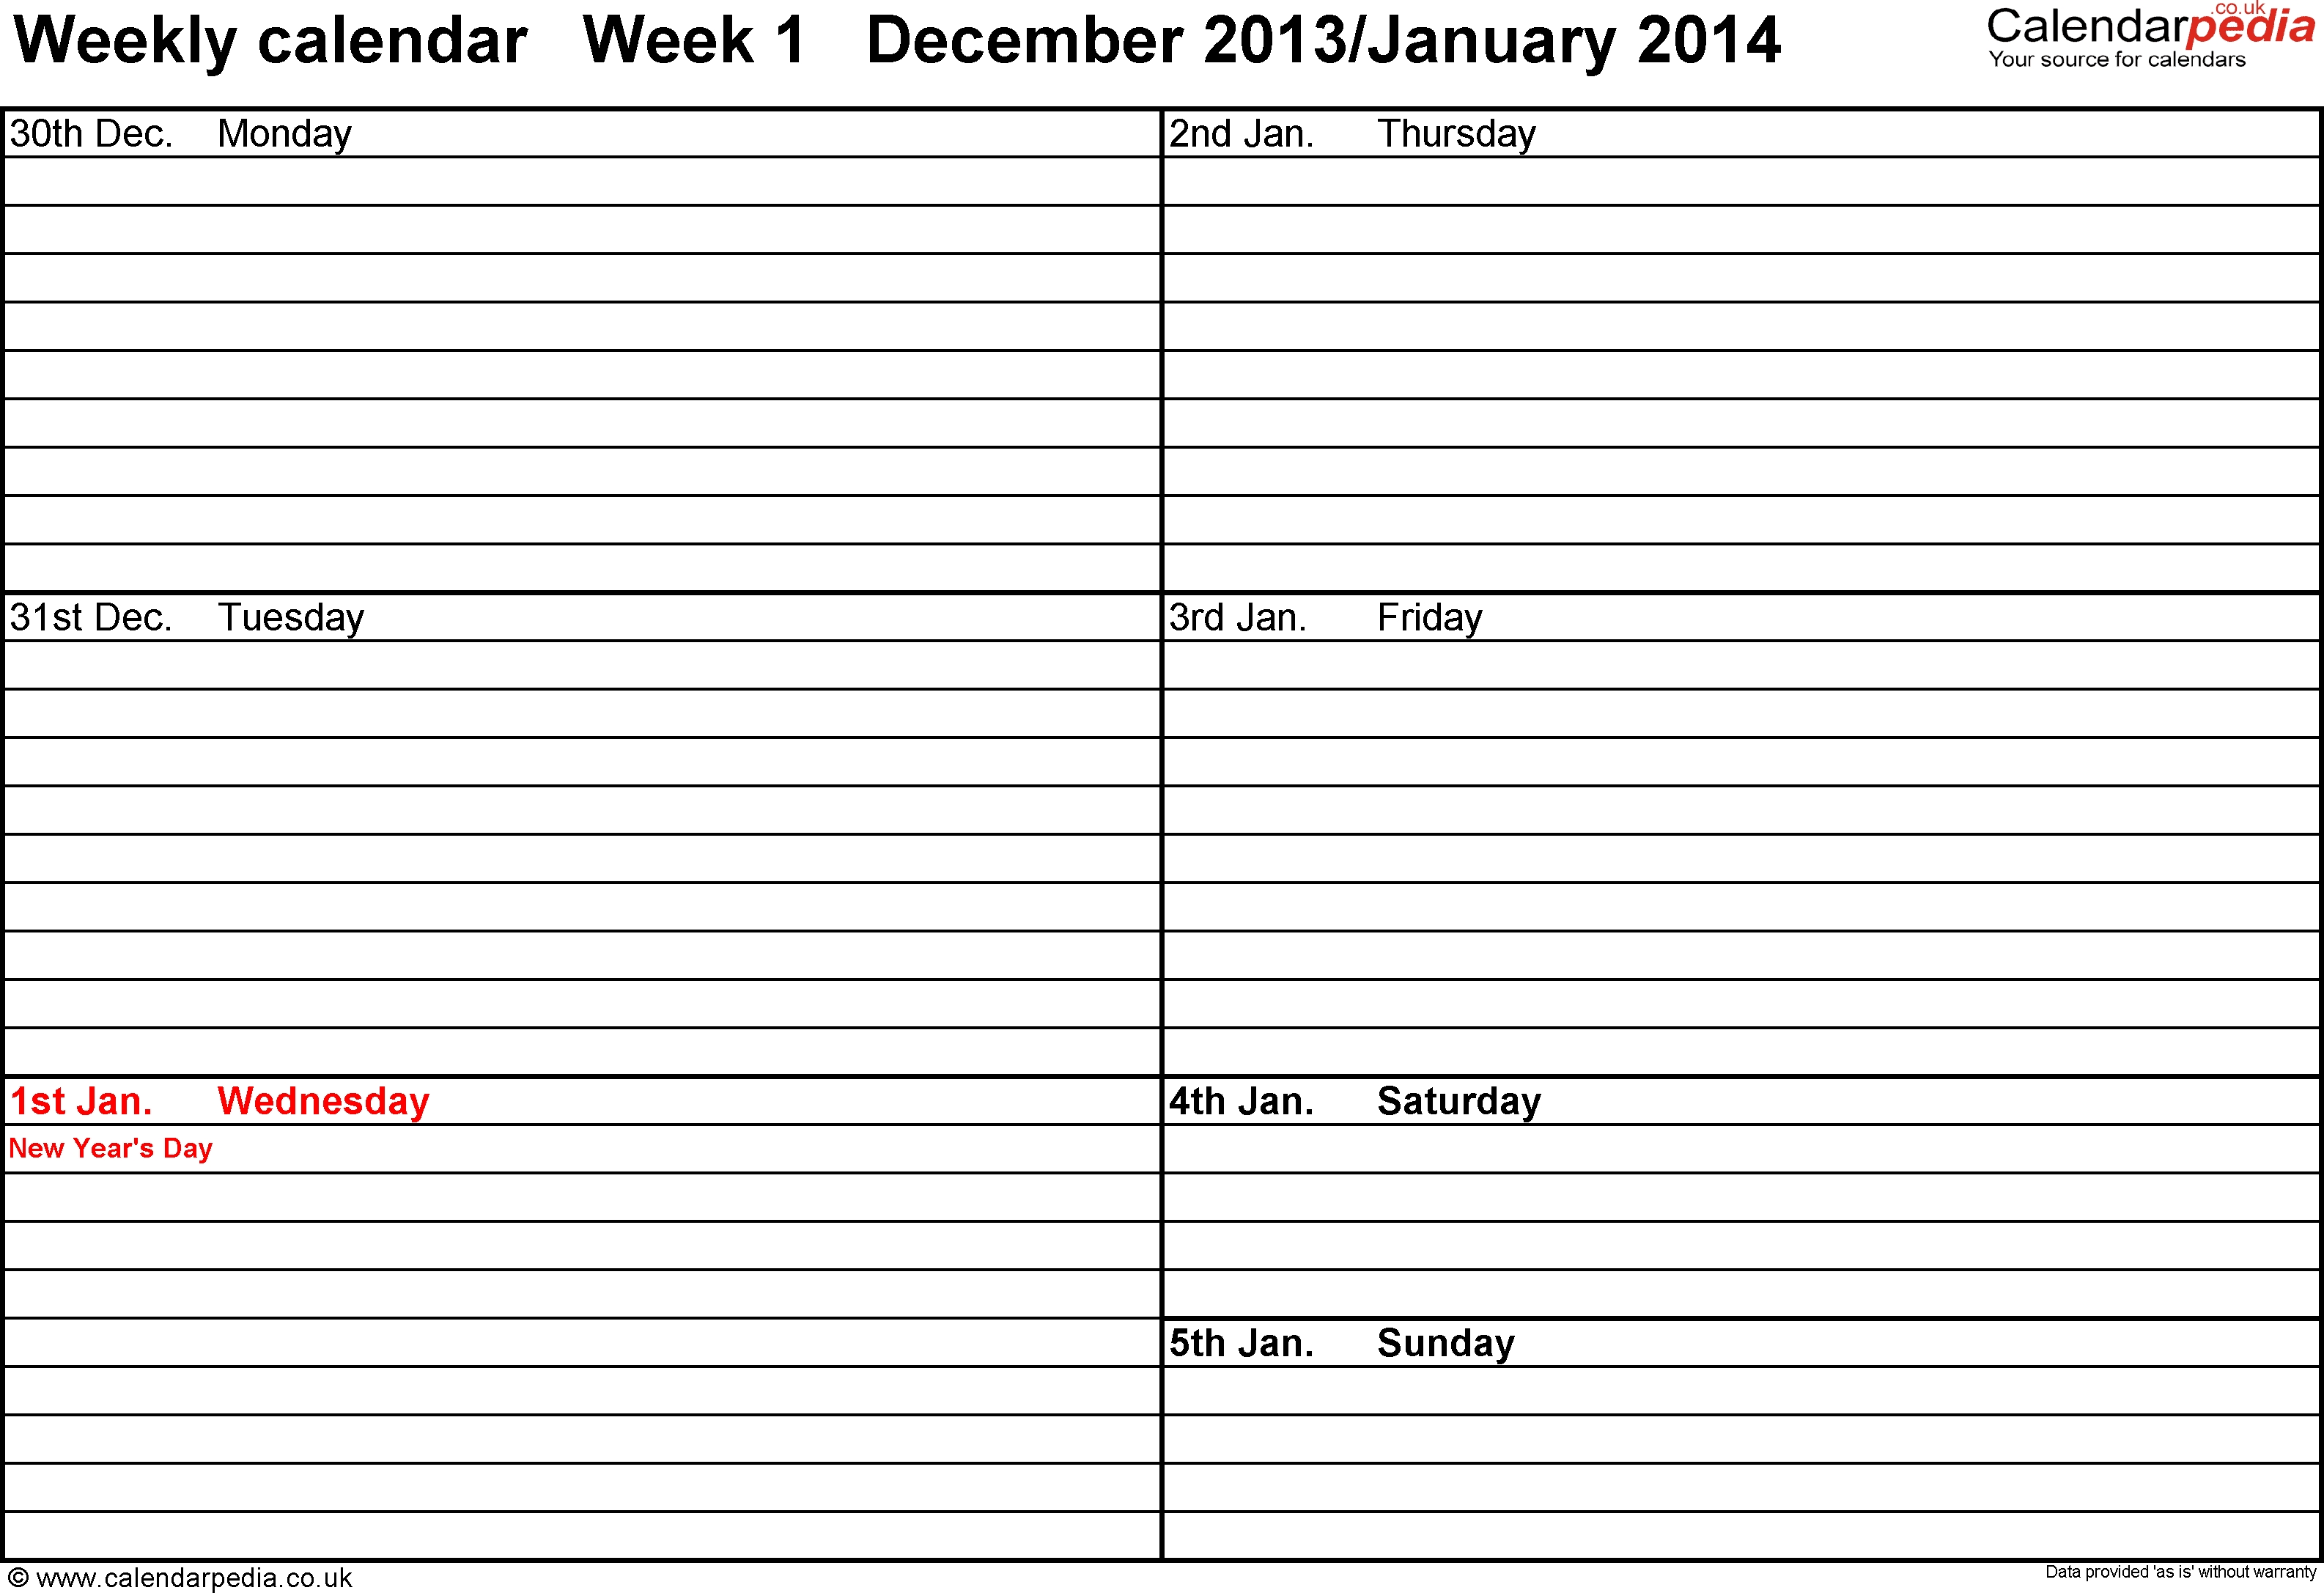 Week Schedule Template Weekly Calendar Uk Free Printable Templates